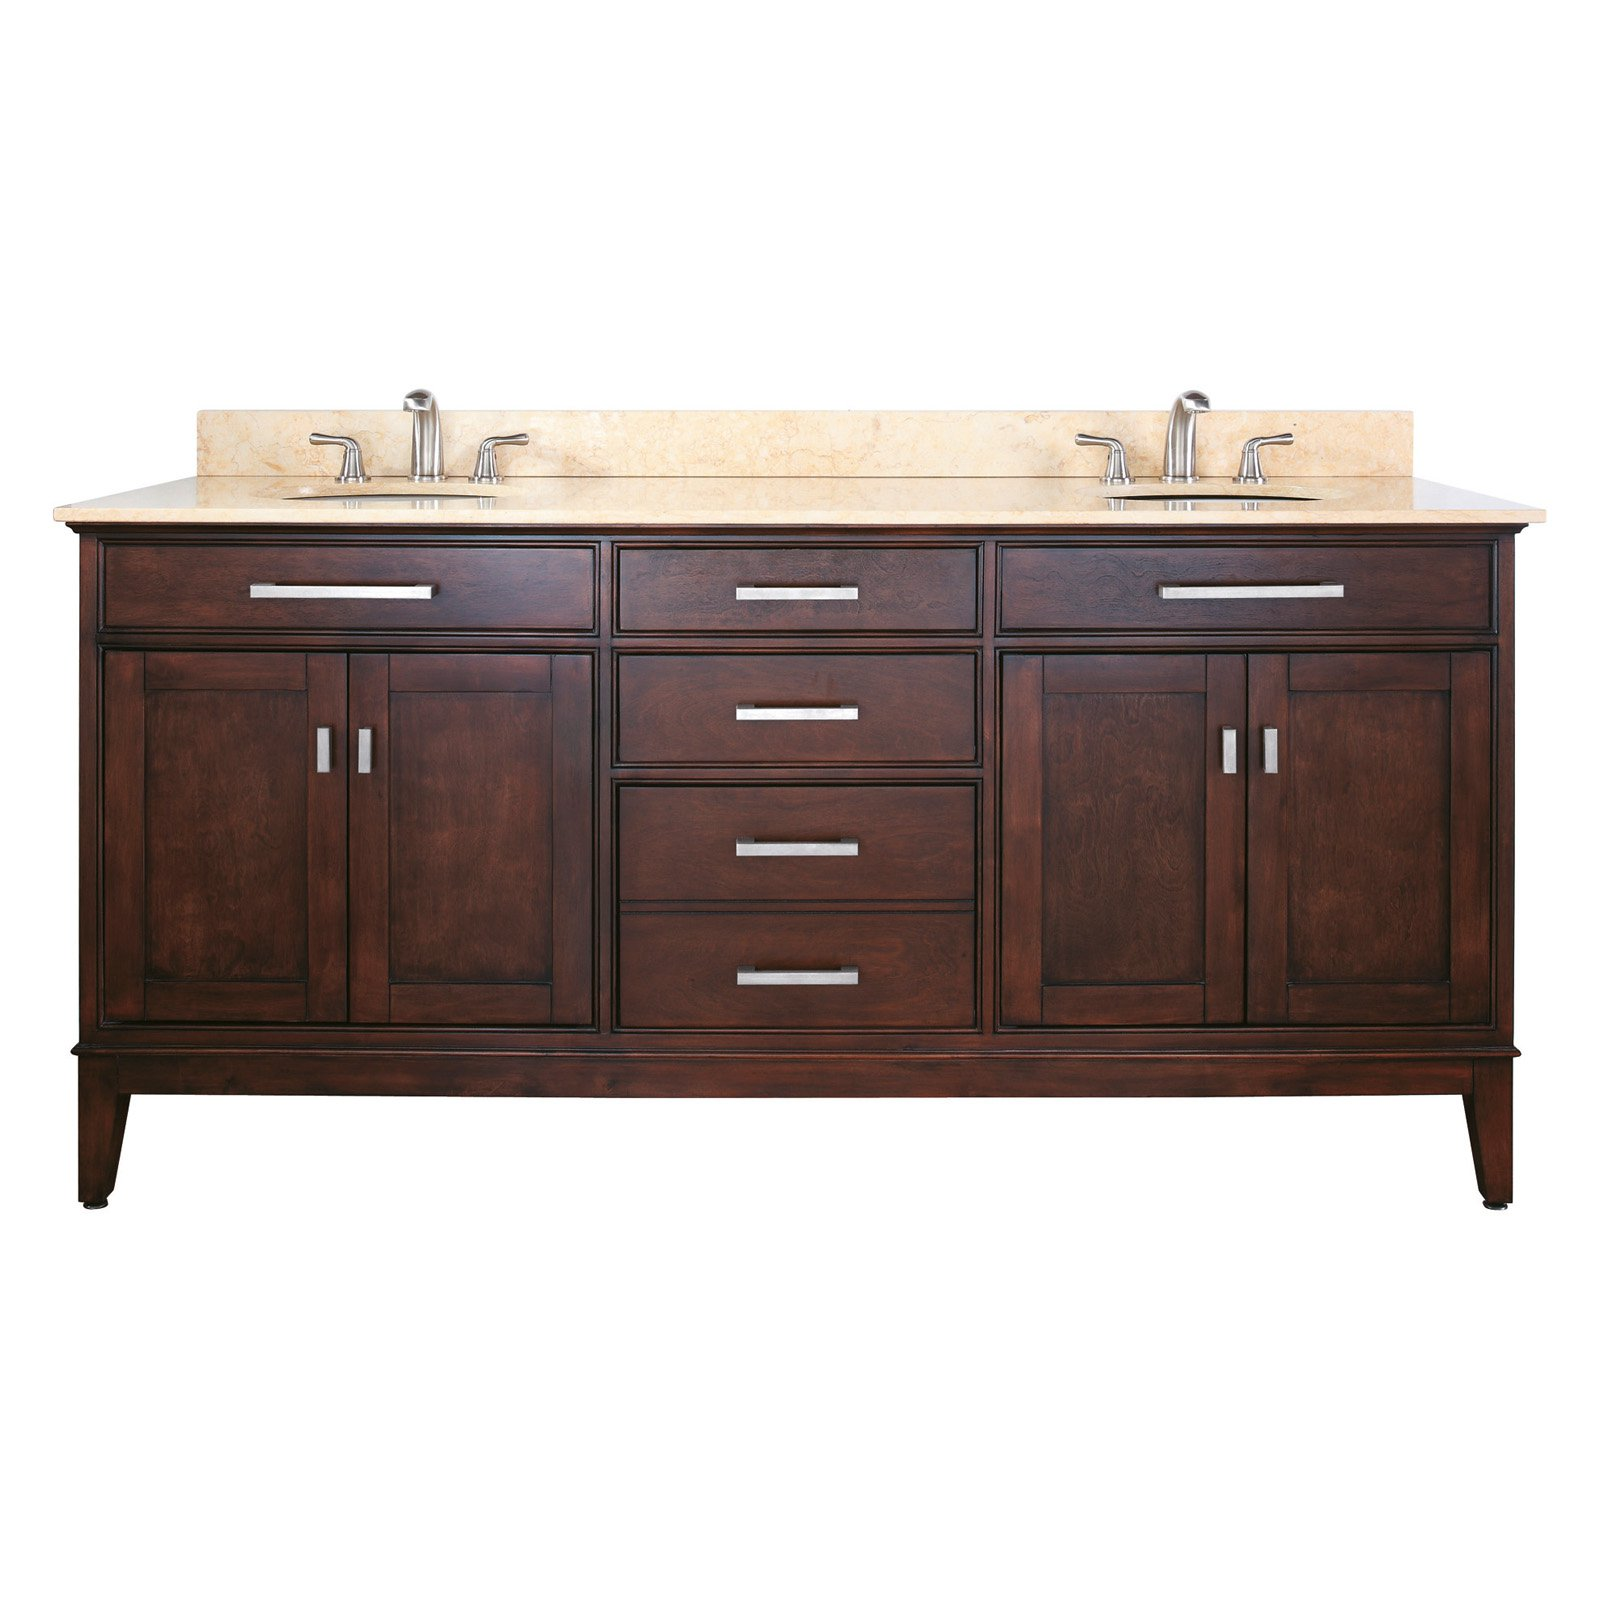 Avanity MADISON-VS72-LE Madison 72-in. Double Bathroom Vanity with Optional Mirrors